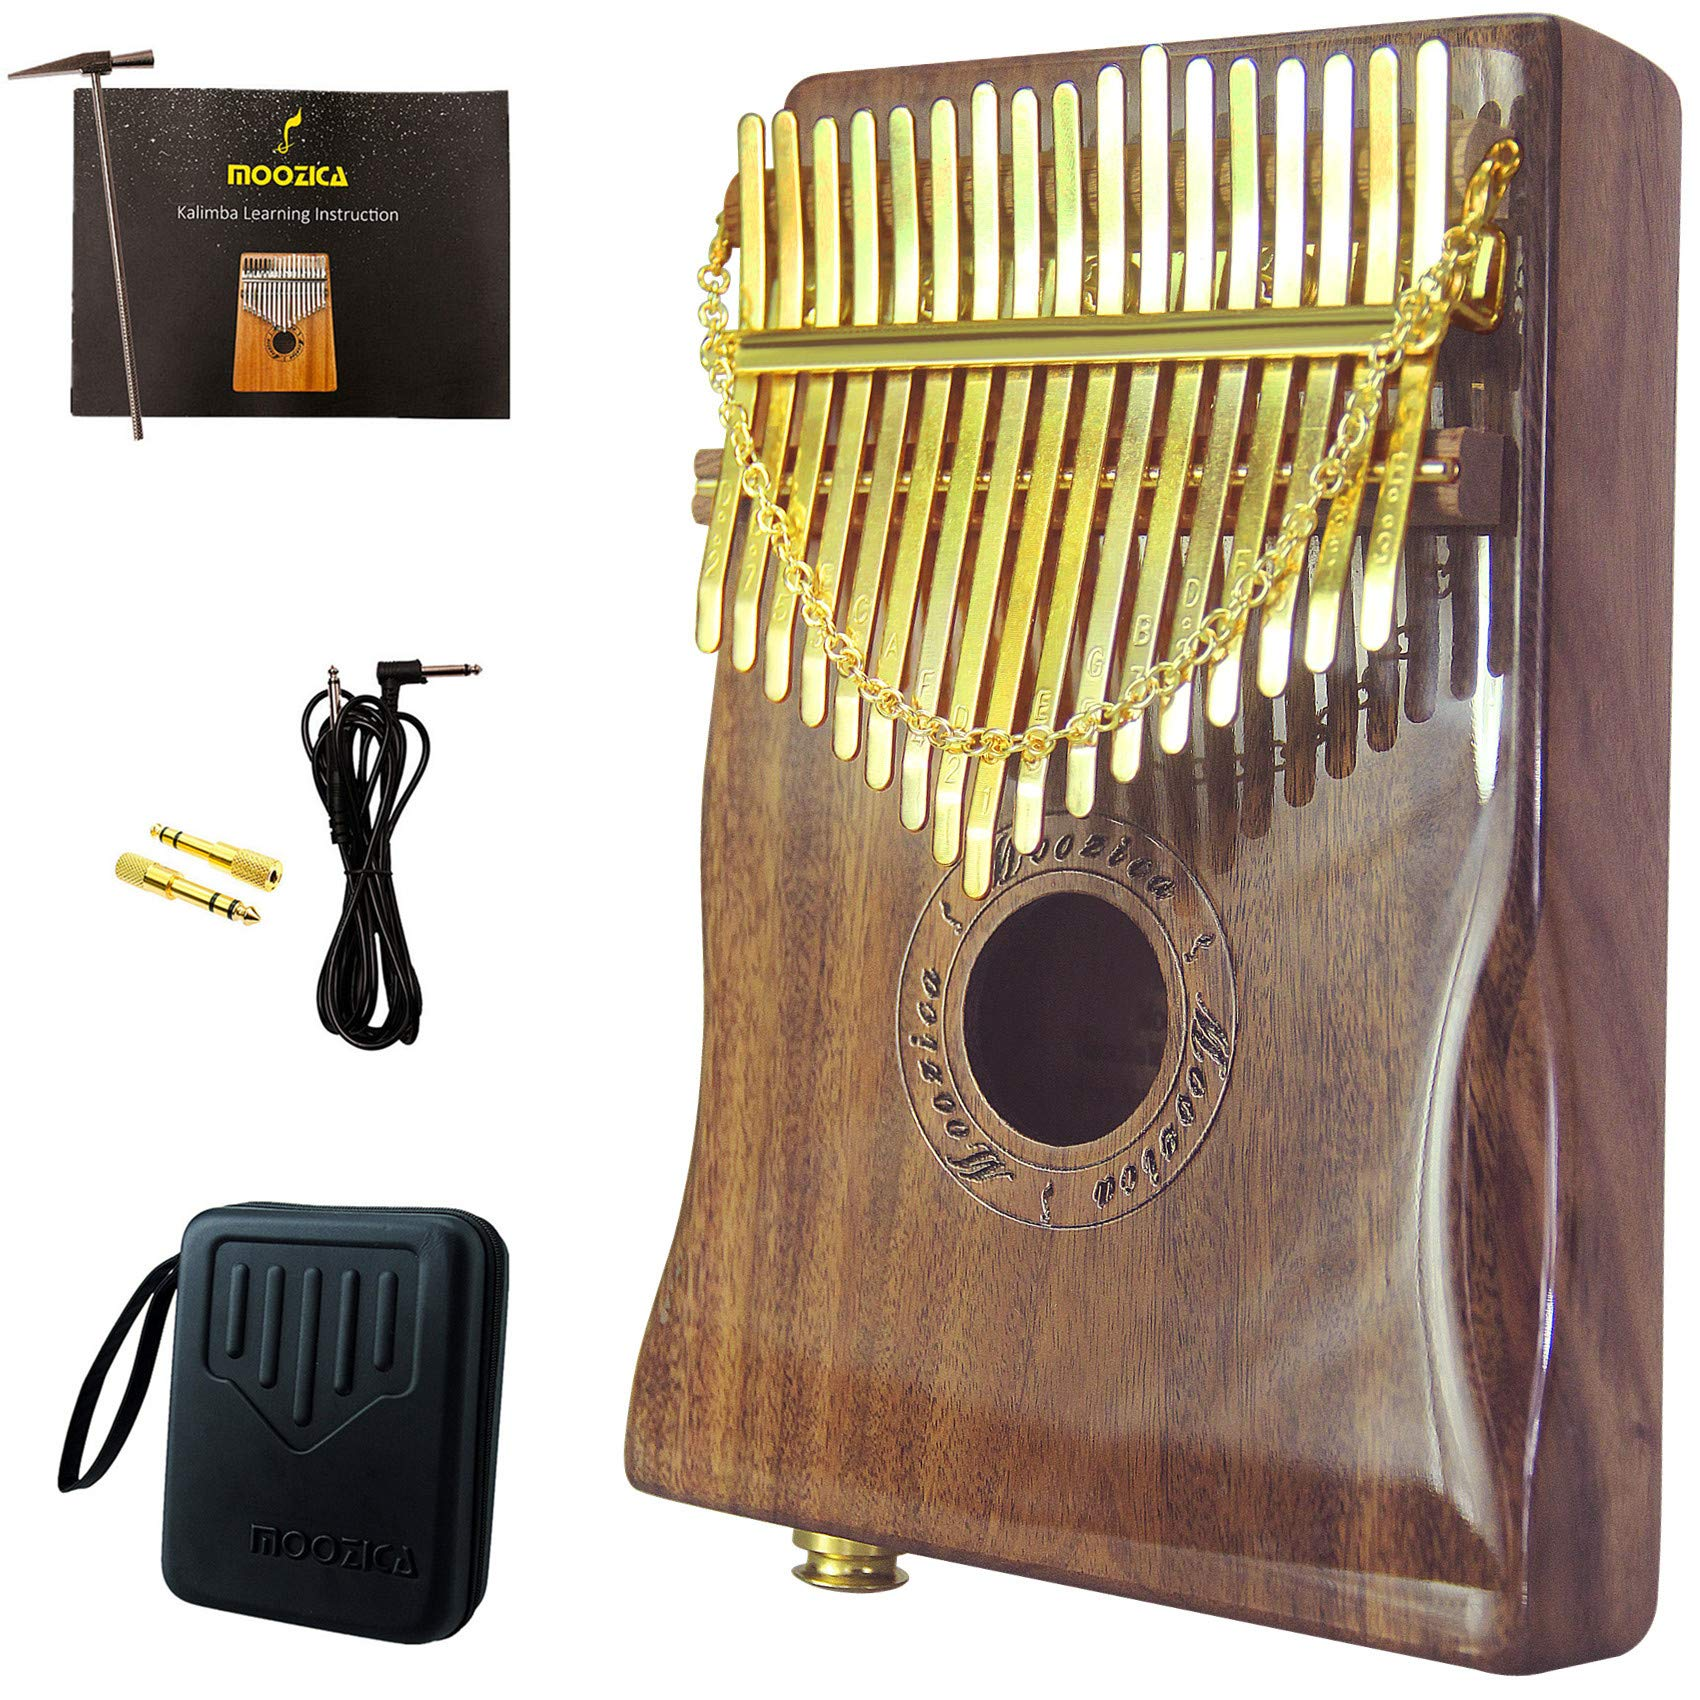 Moozica 17-key EQ Kalimba Thumb Piano, Top Quality Solid Koa Wood Electric Kalimba With Build-in Pickup and High-gloss Lacquer Finishing(K17KP)